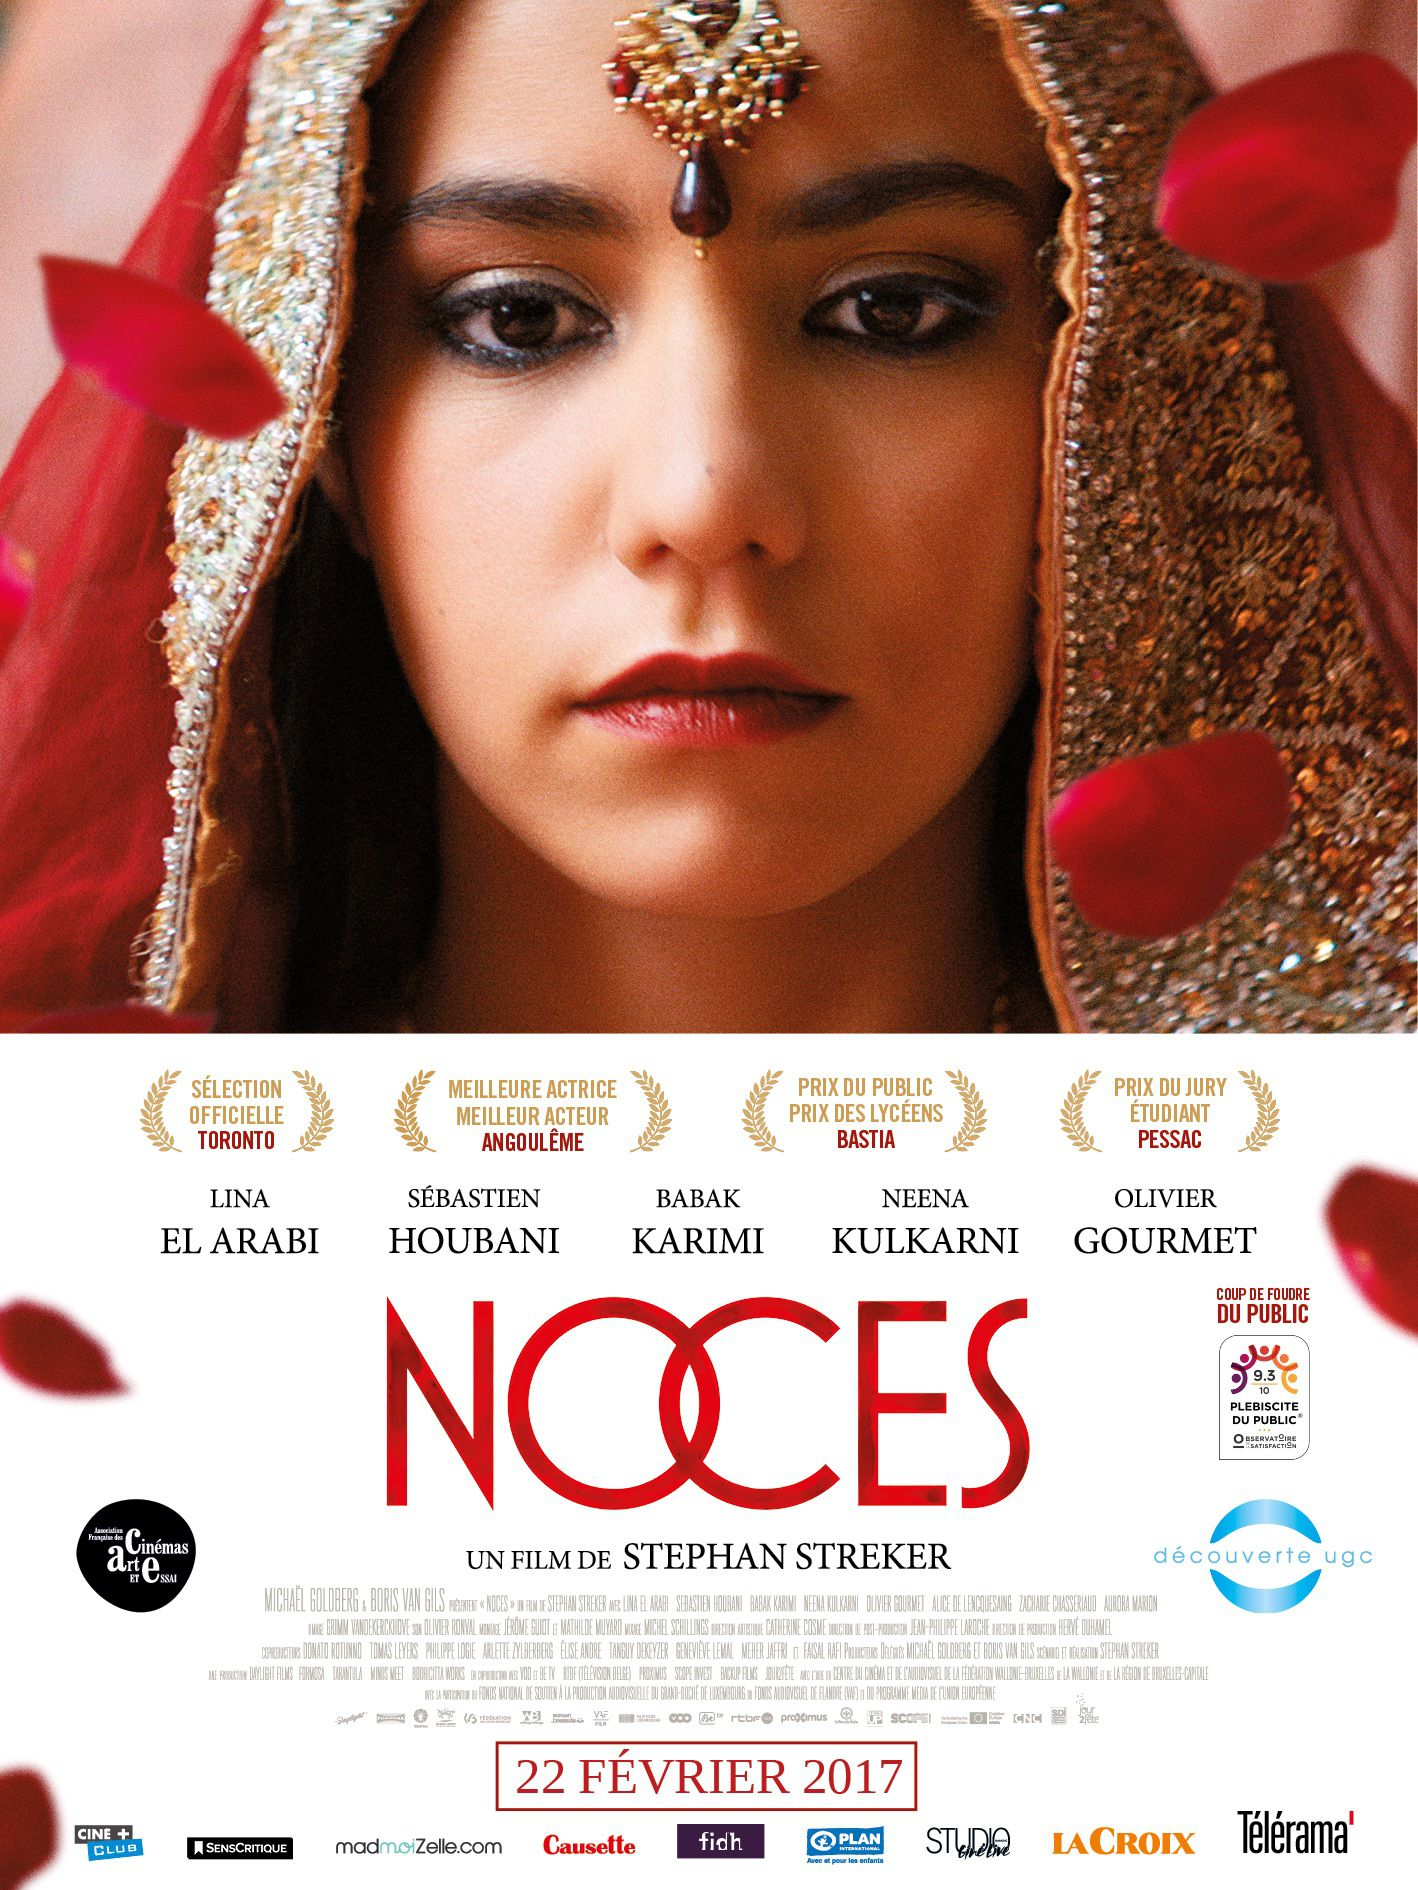 Noces - Film (2017) streaming VF gratuit complet